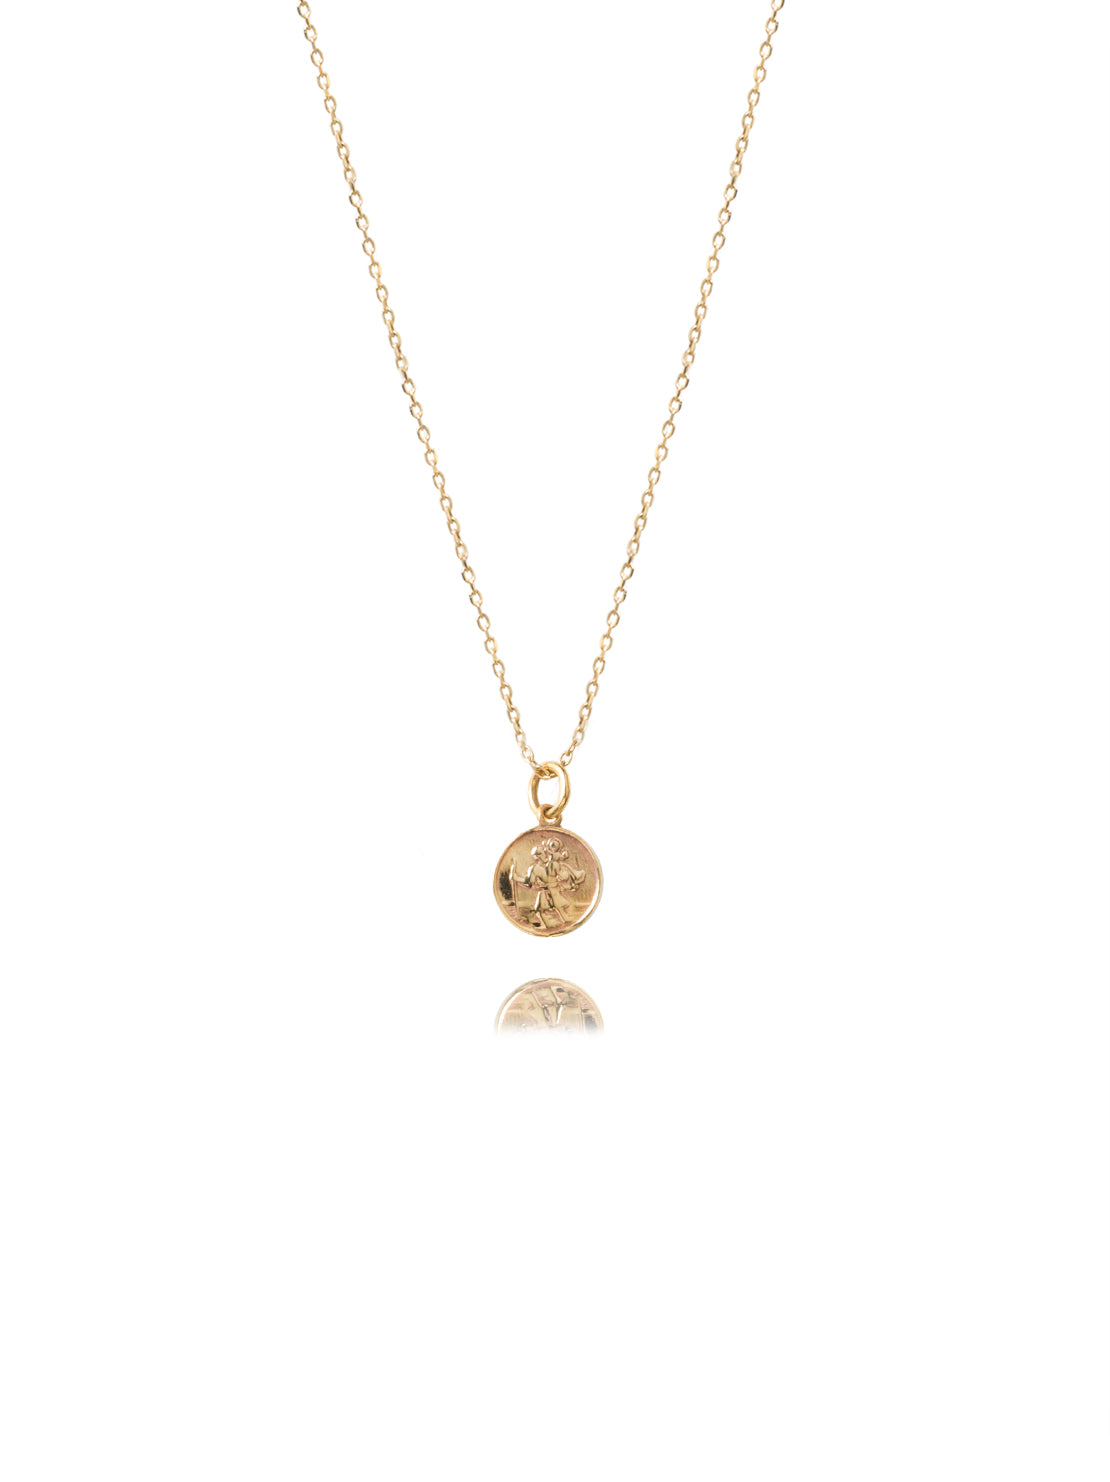 Small Gold St Christopher Necklace by Tilly Sveaas